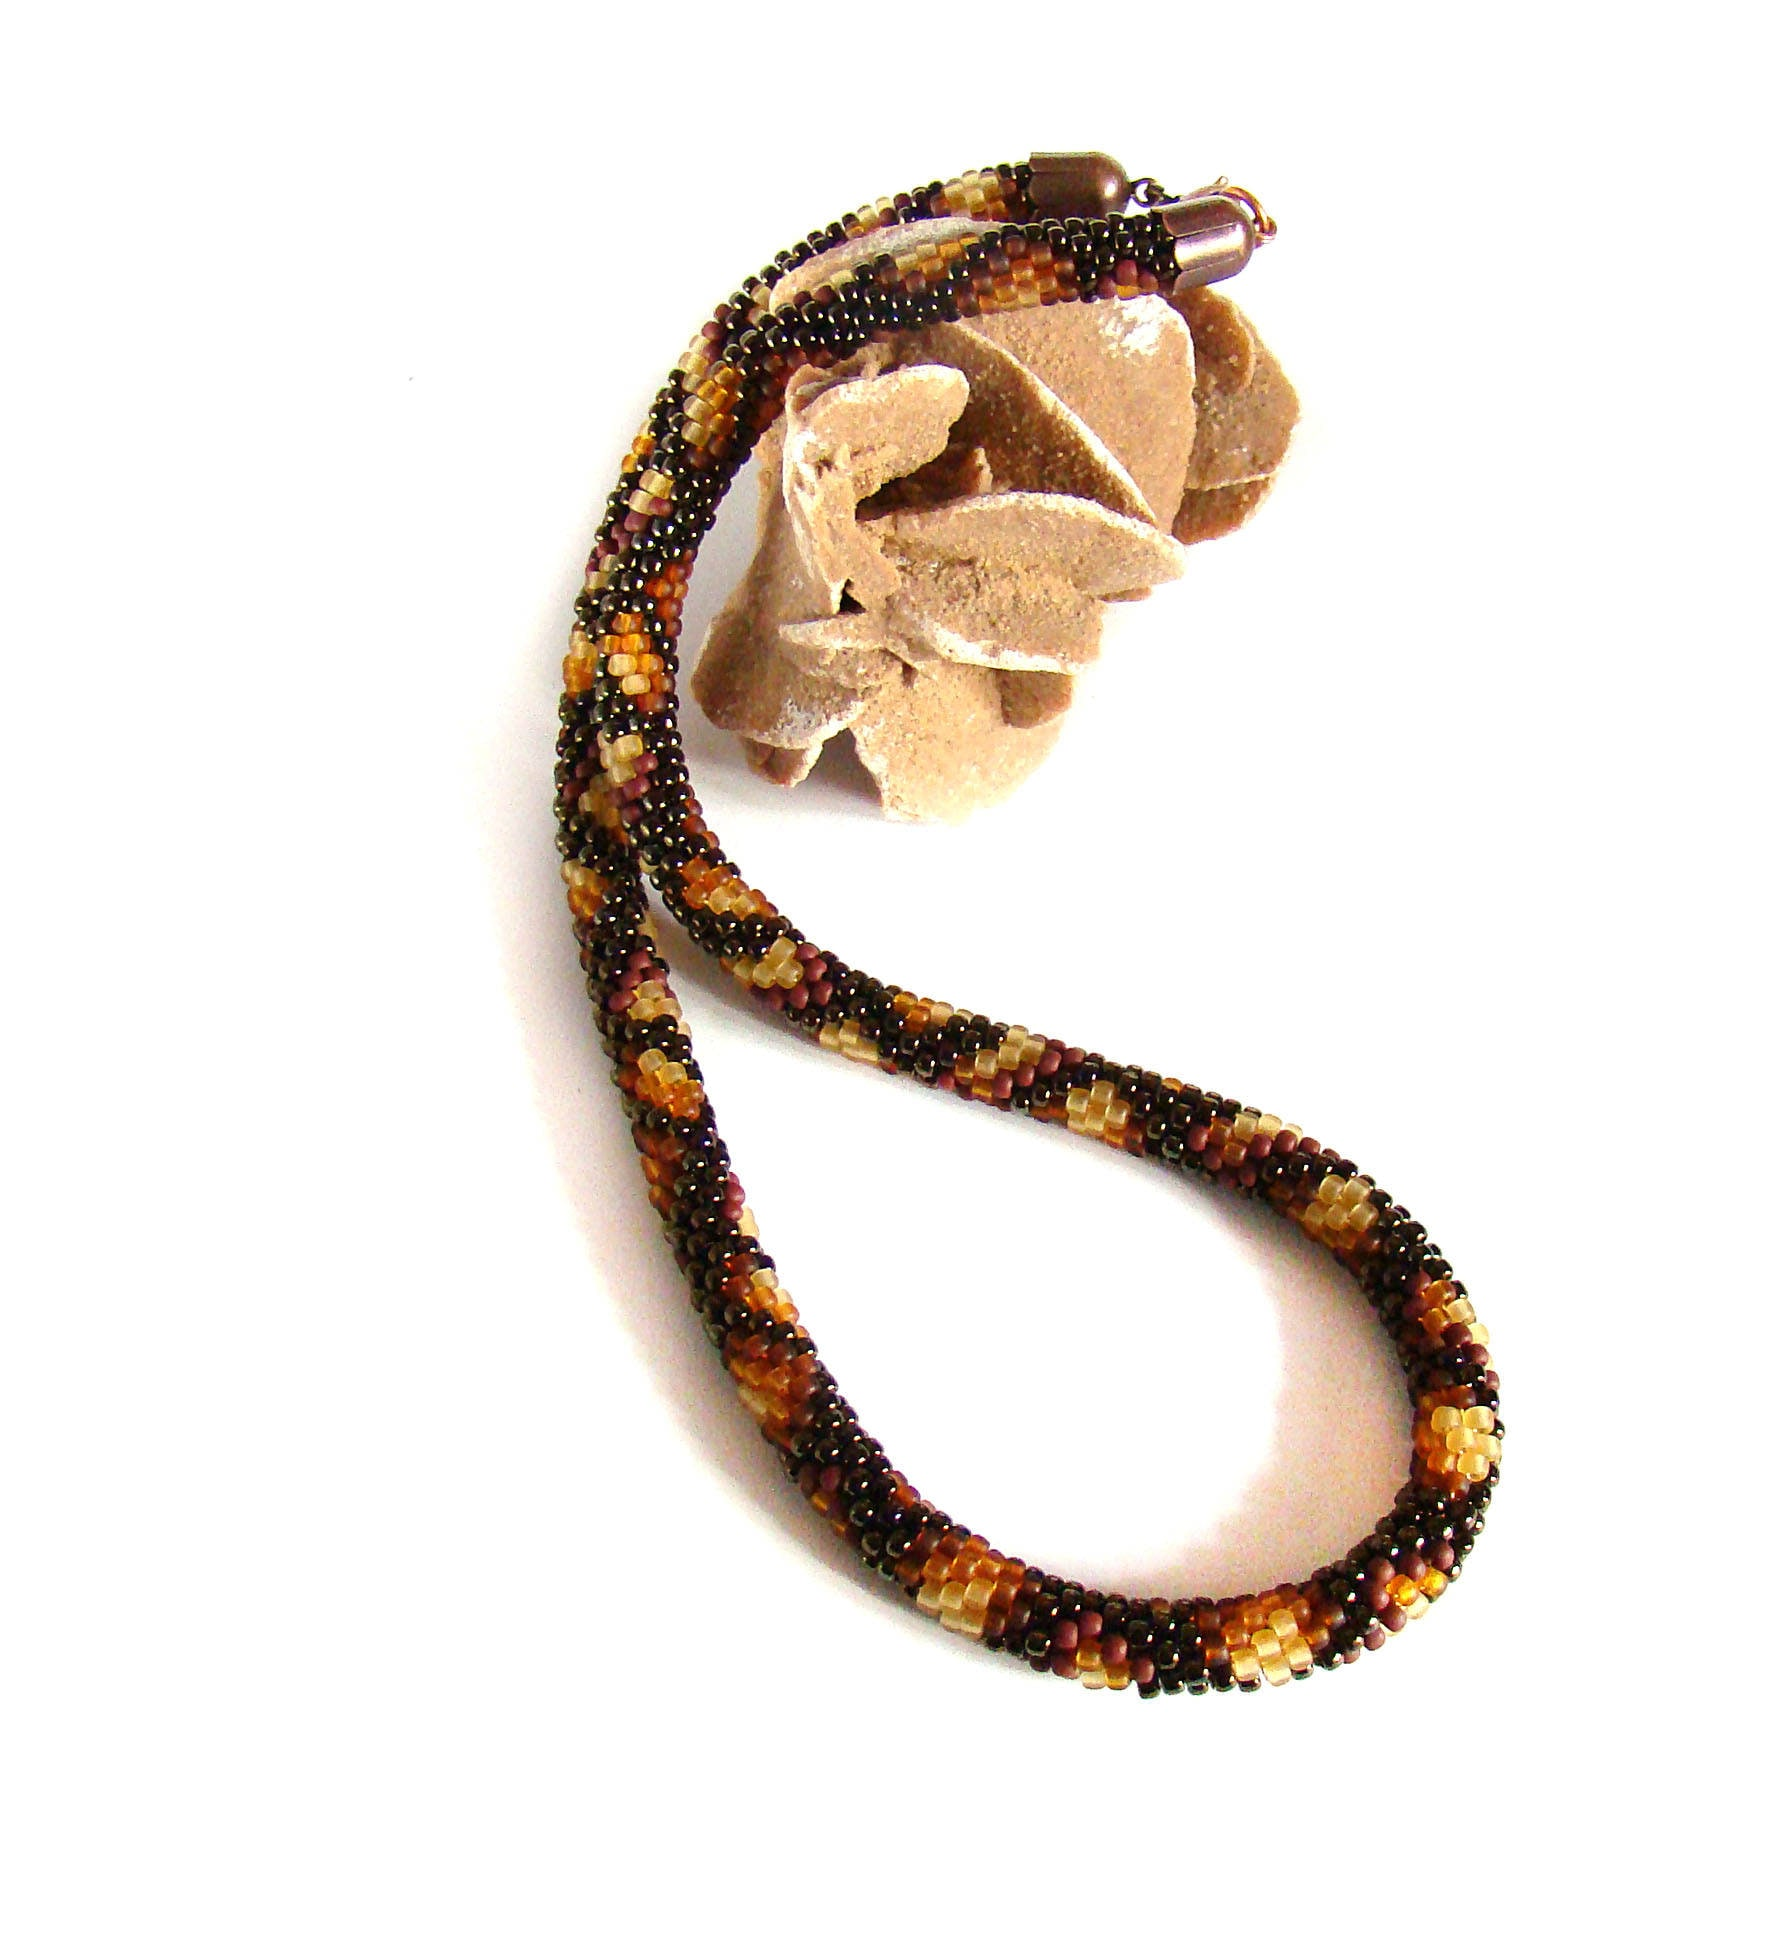 Ethnic necklace Brown Snake necklace Ouroboro beaded crochet necklace